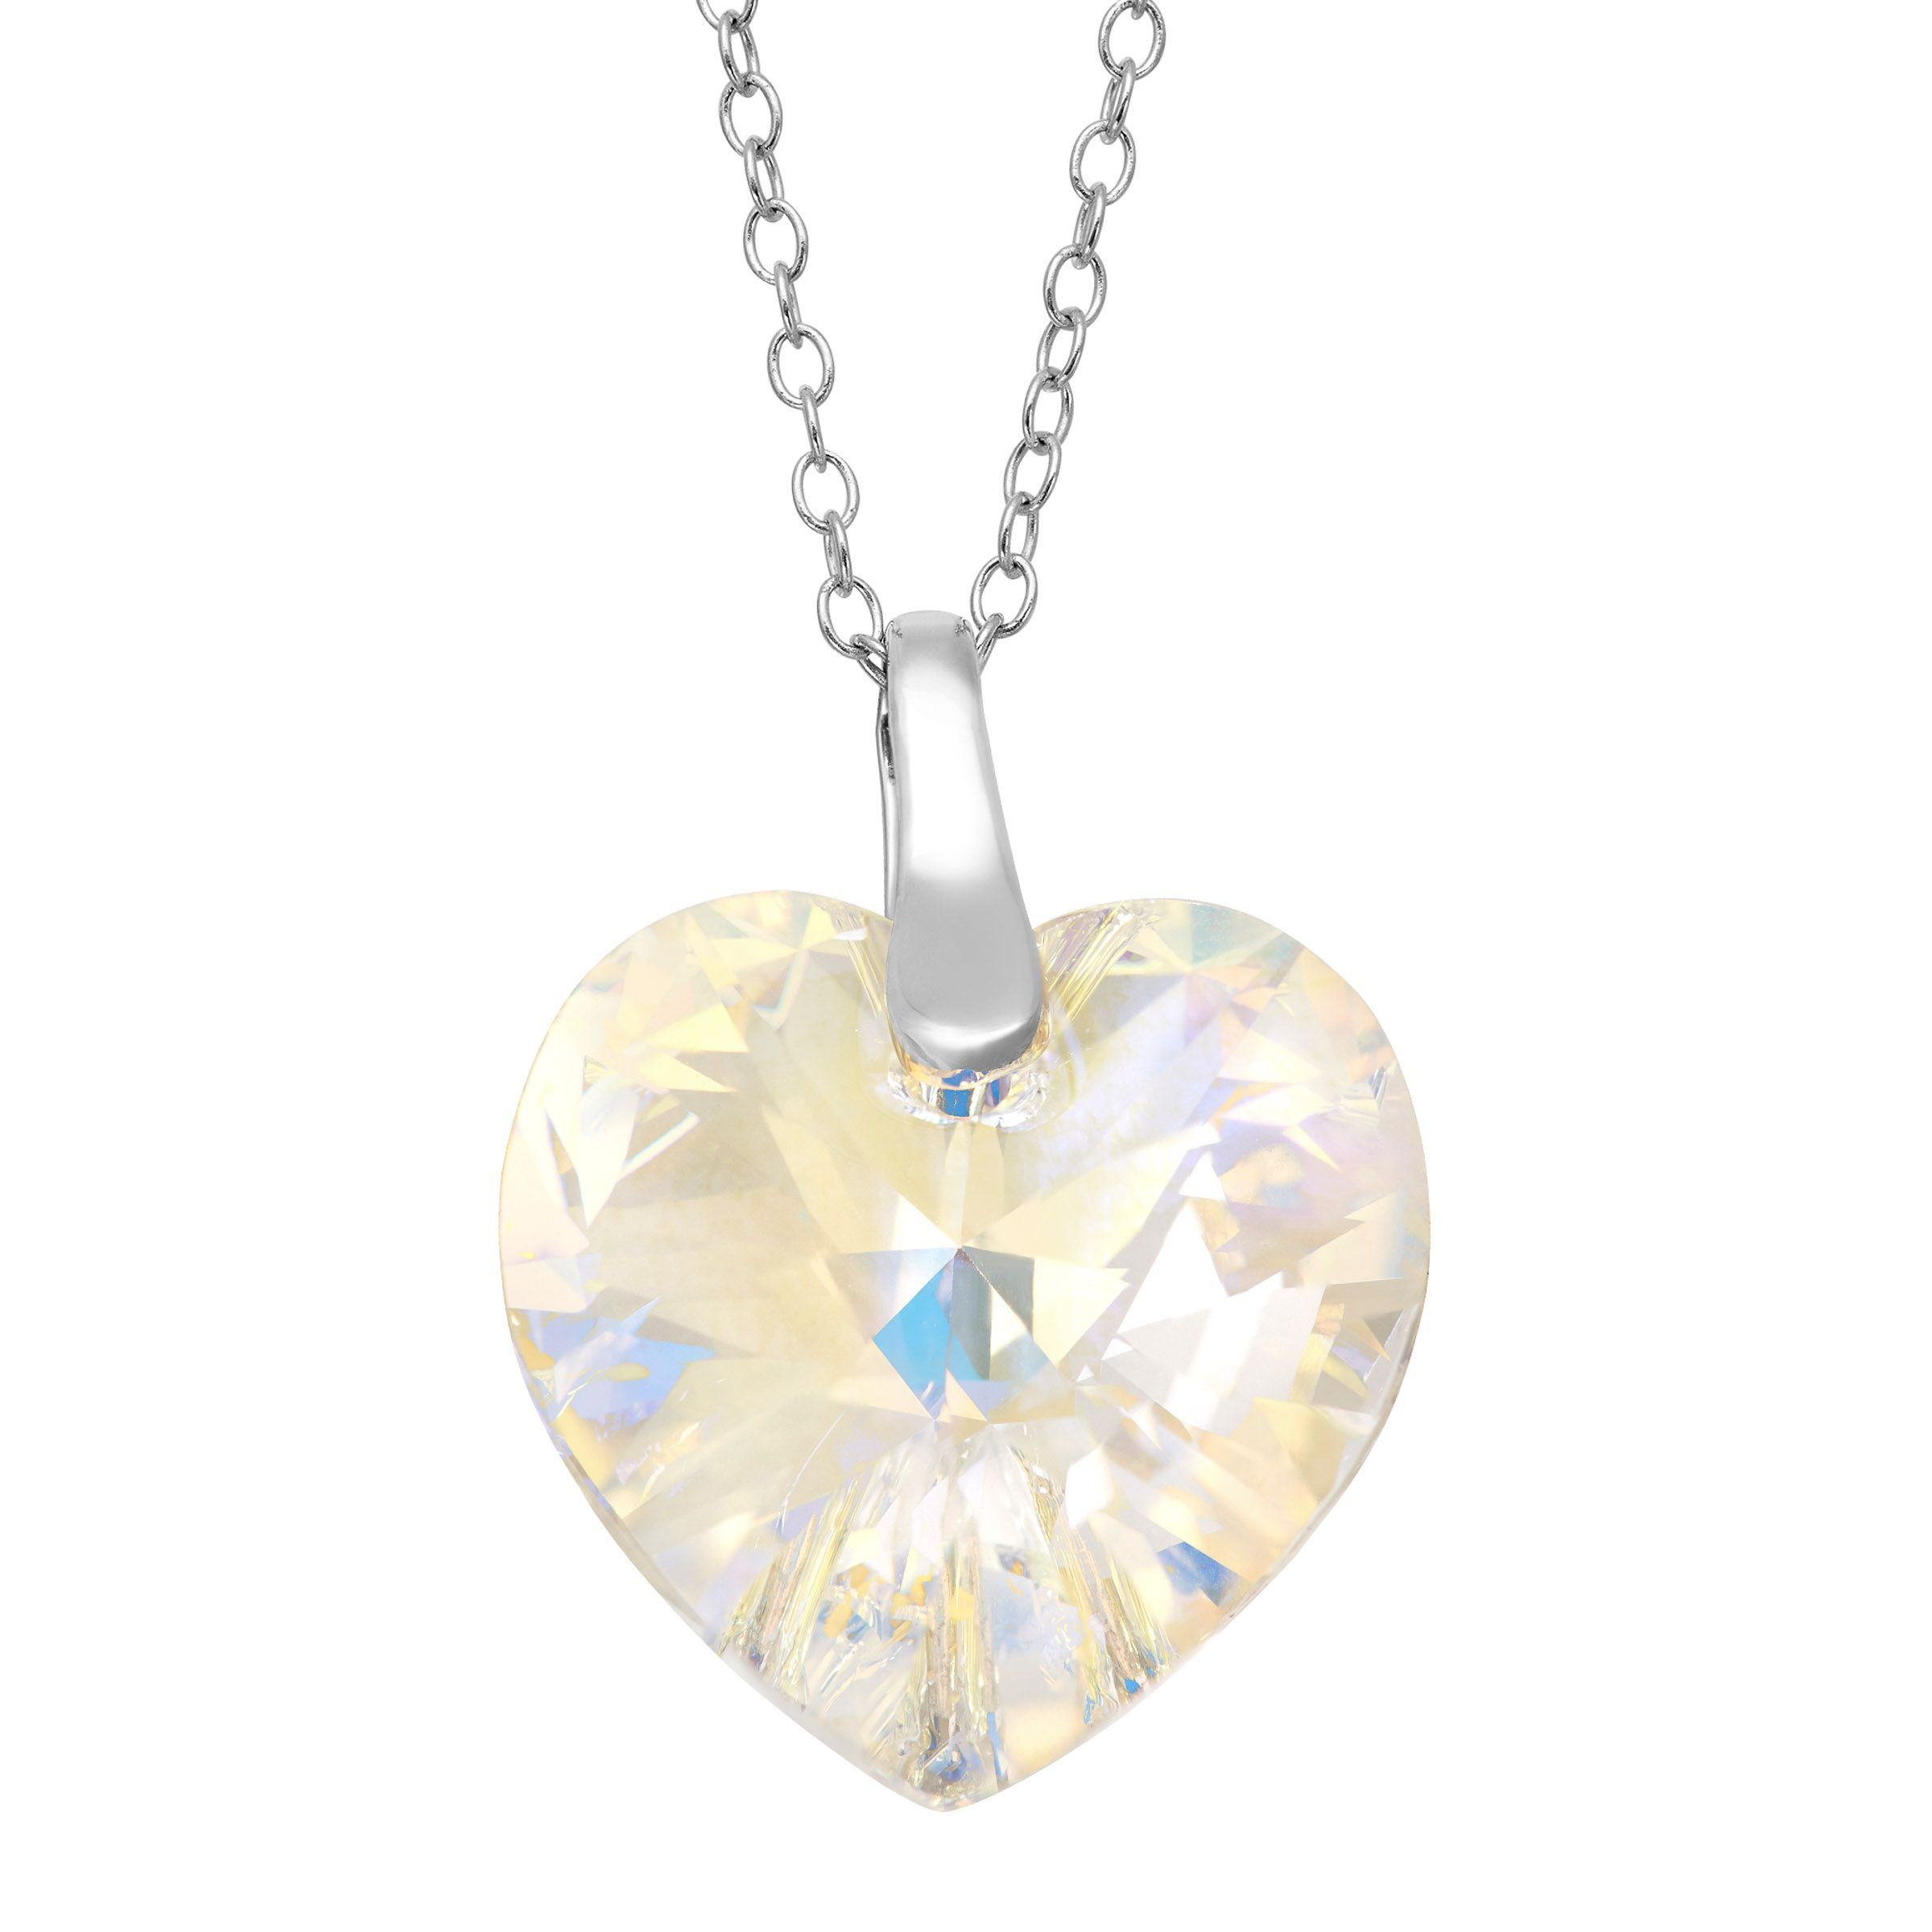 11ad4789d Details about Crystaluxe Heart Pendant with Aurora Borealis Swarovski  Crystal Sterling Silver